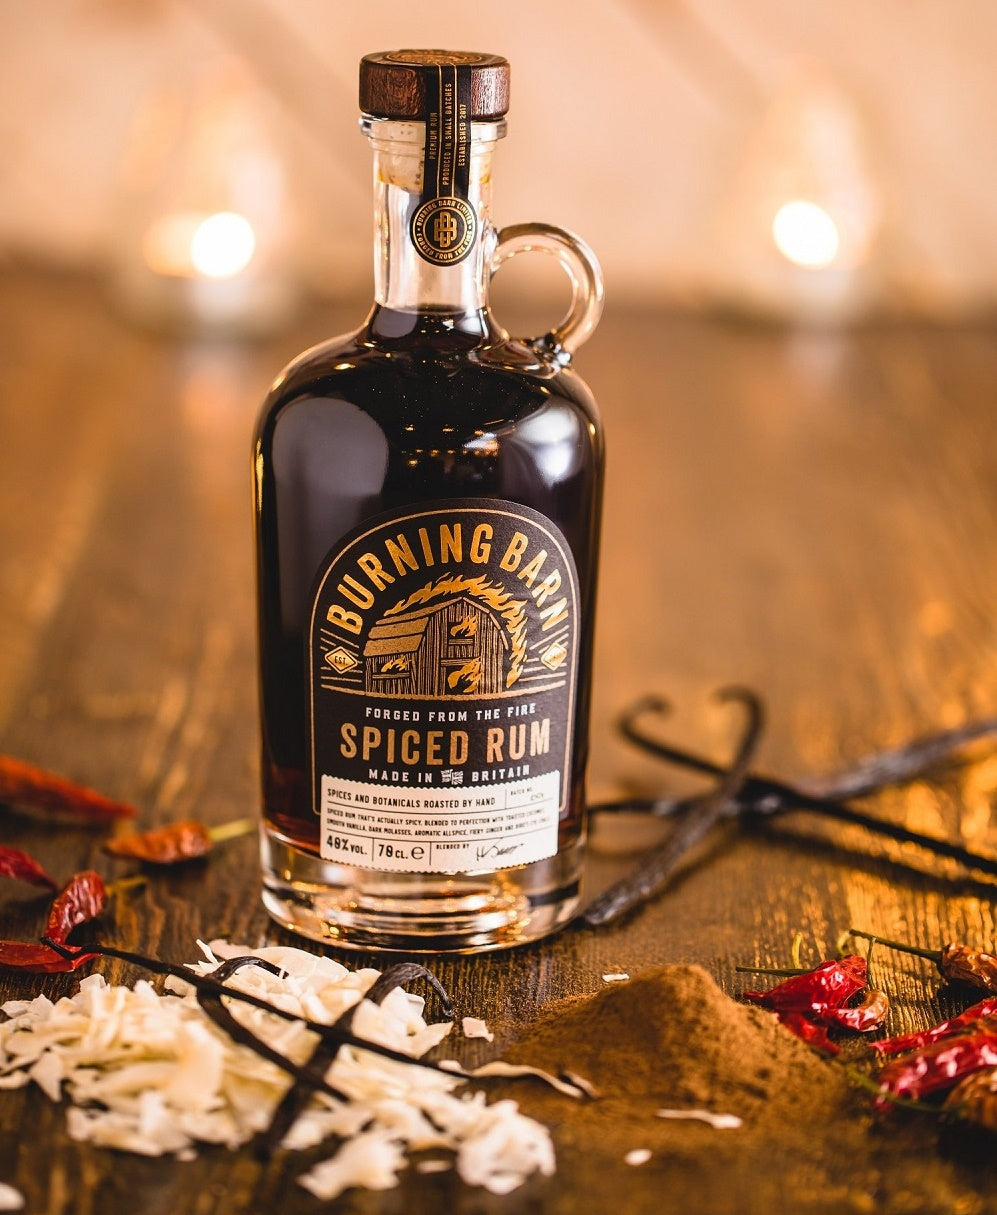 SPOTLIGHT ON... SPICED RUM